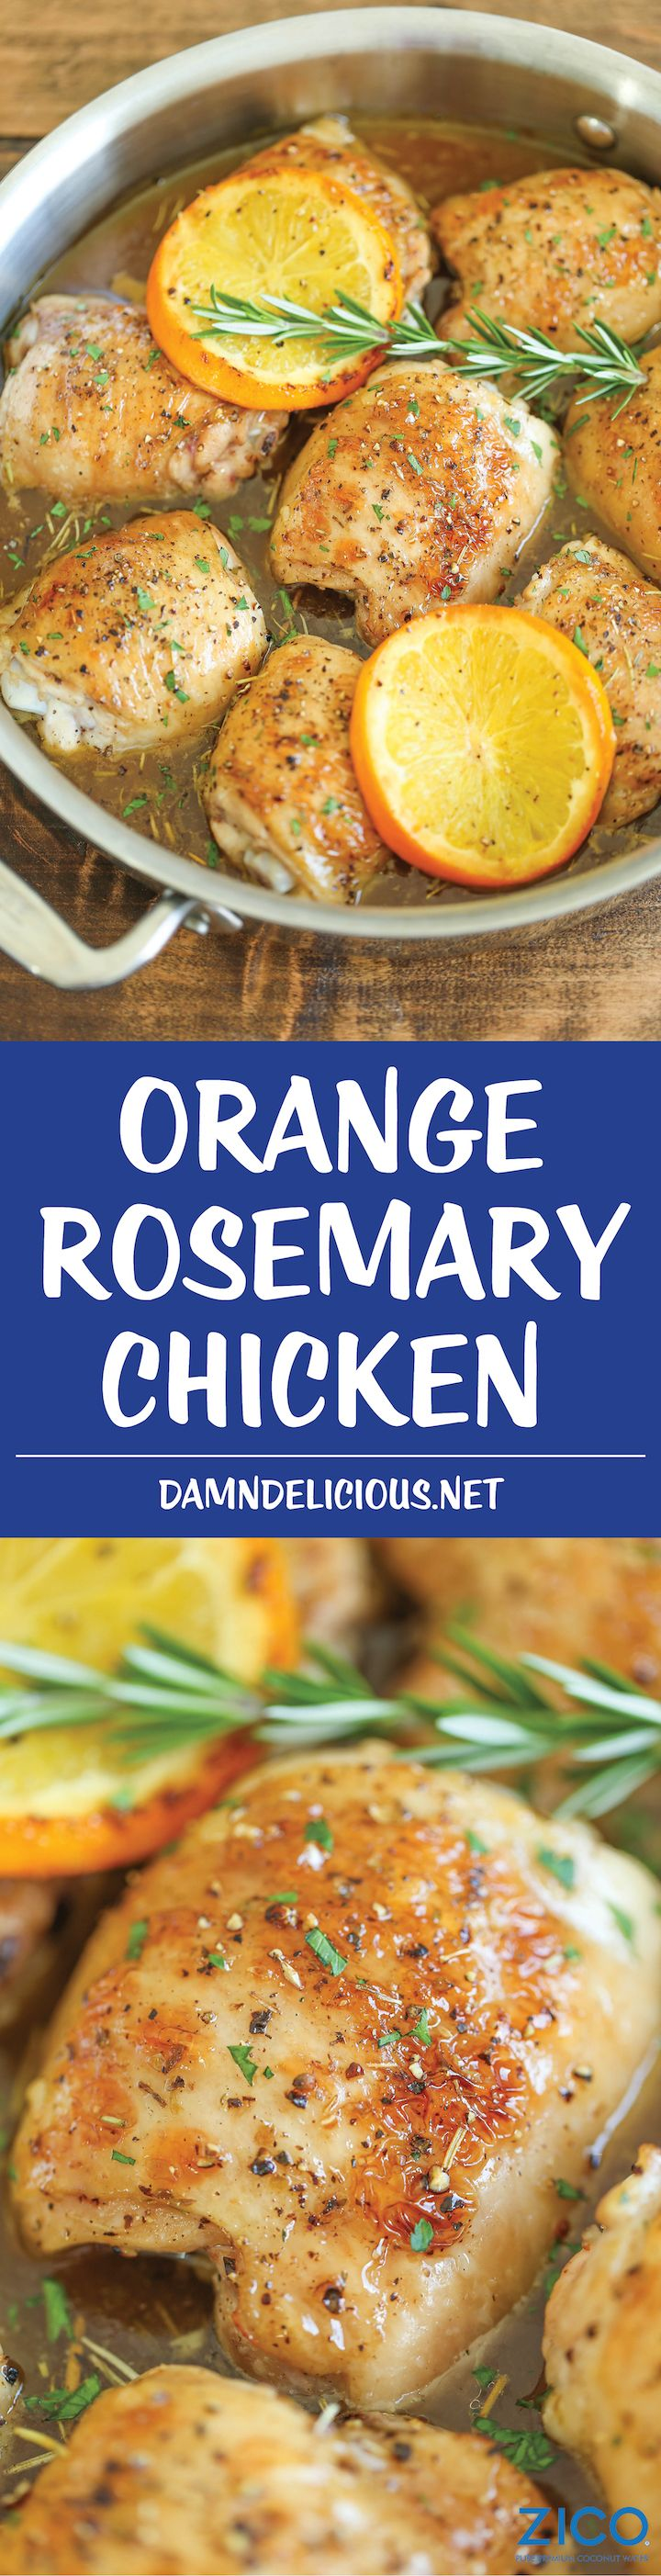 Orange Rosemary Chicken - Crisp-tender chicken, roasted in the most epic, melt-in-your-mouth orange rosemary glaze that you'll want to drink!